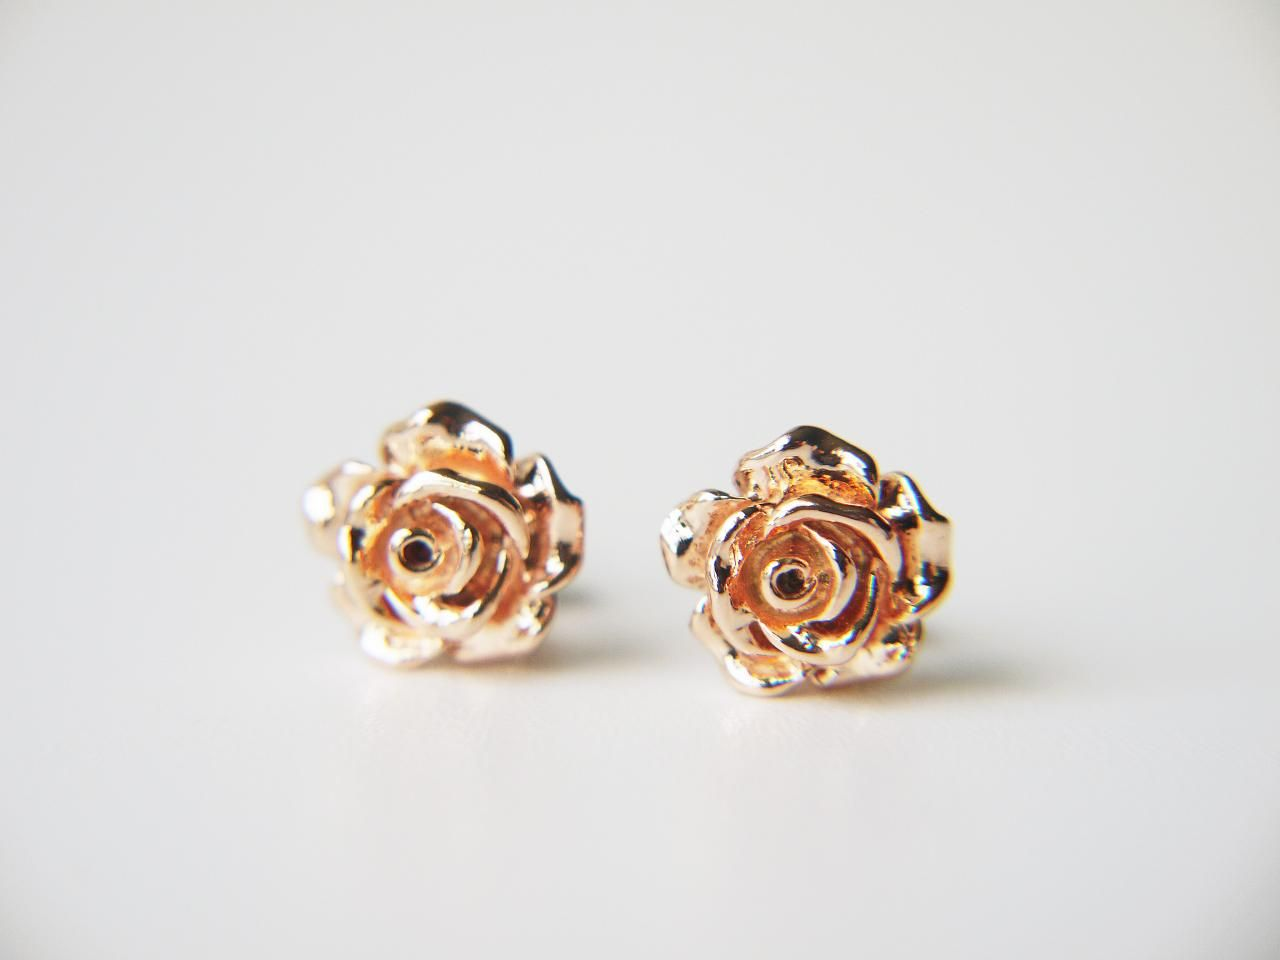 Rose Gold Rose Flower Post Earrings Flower Earrings Studs Rose Earrings Modern Stud Earrings